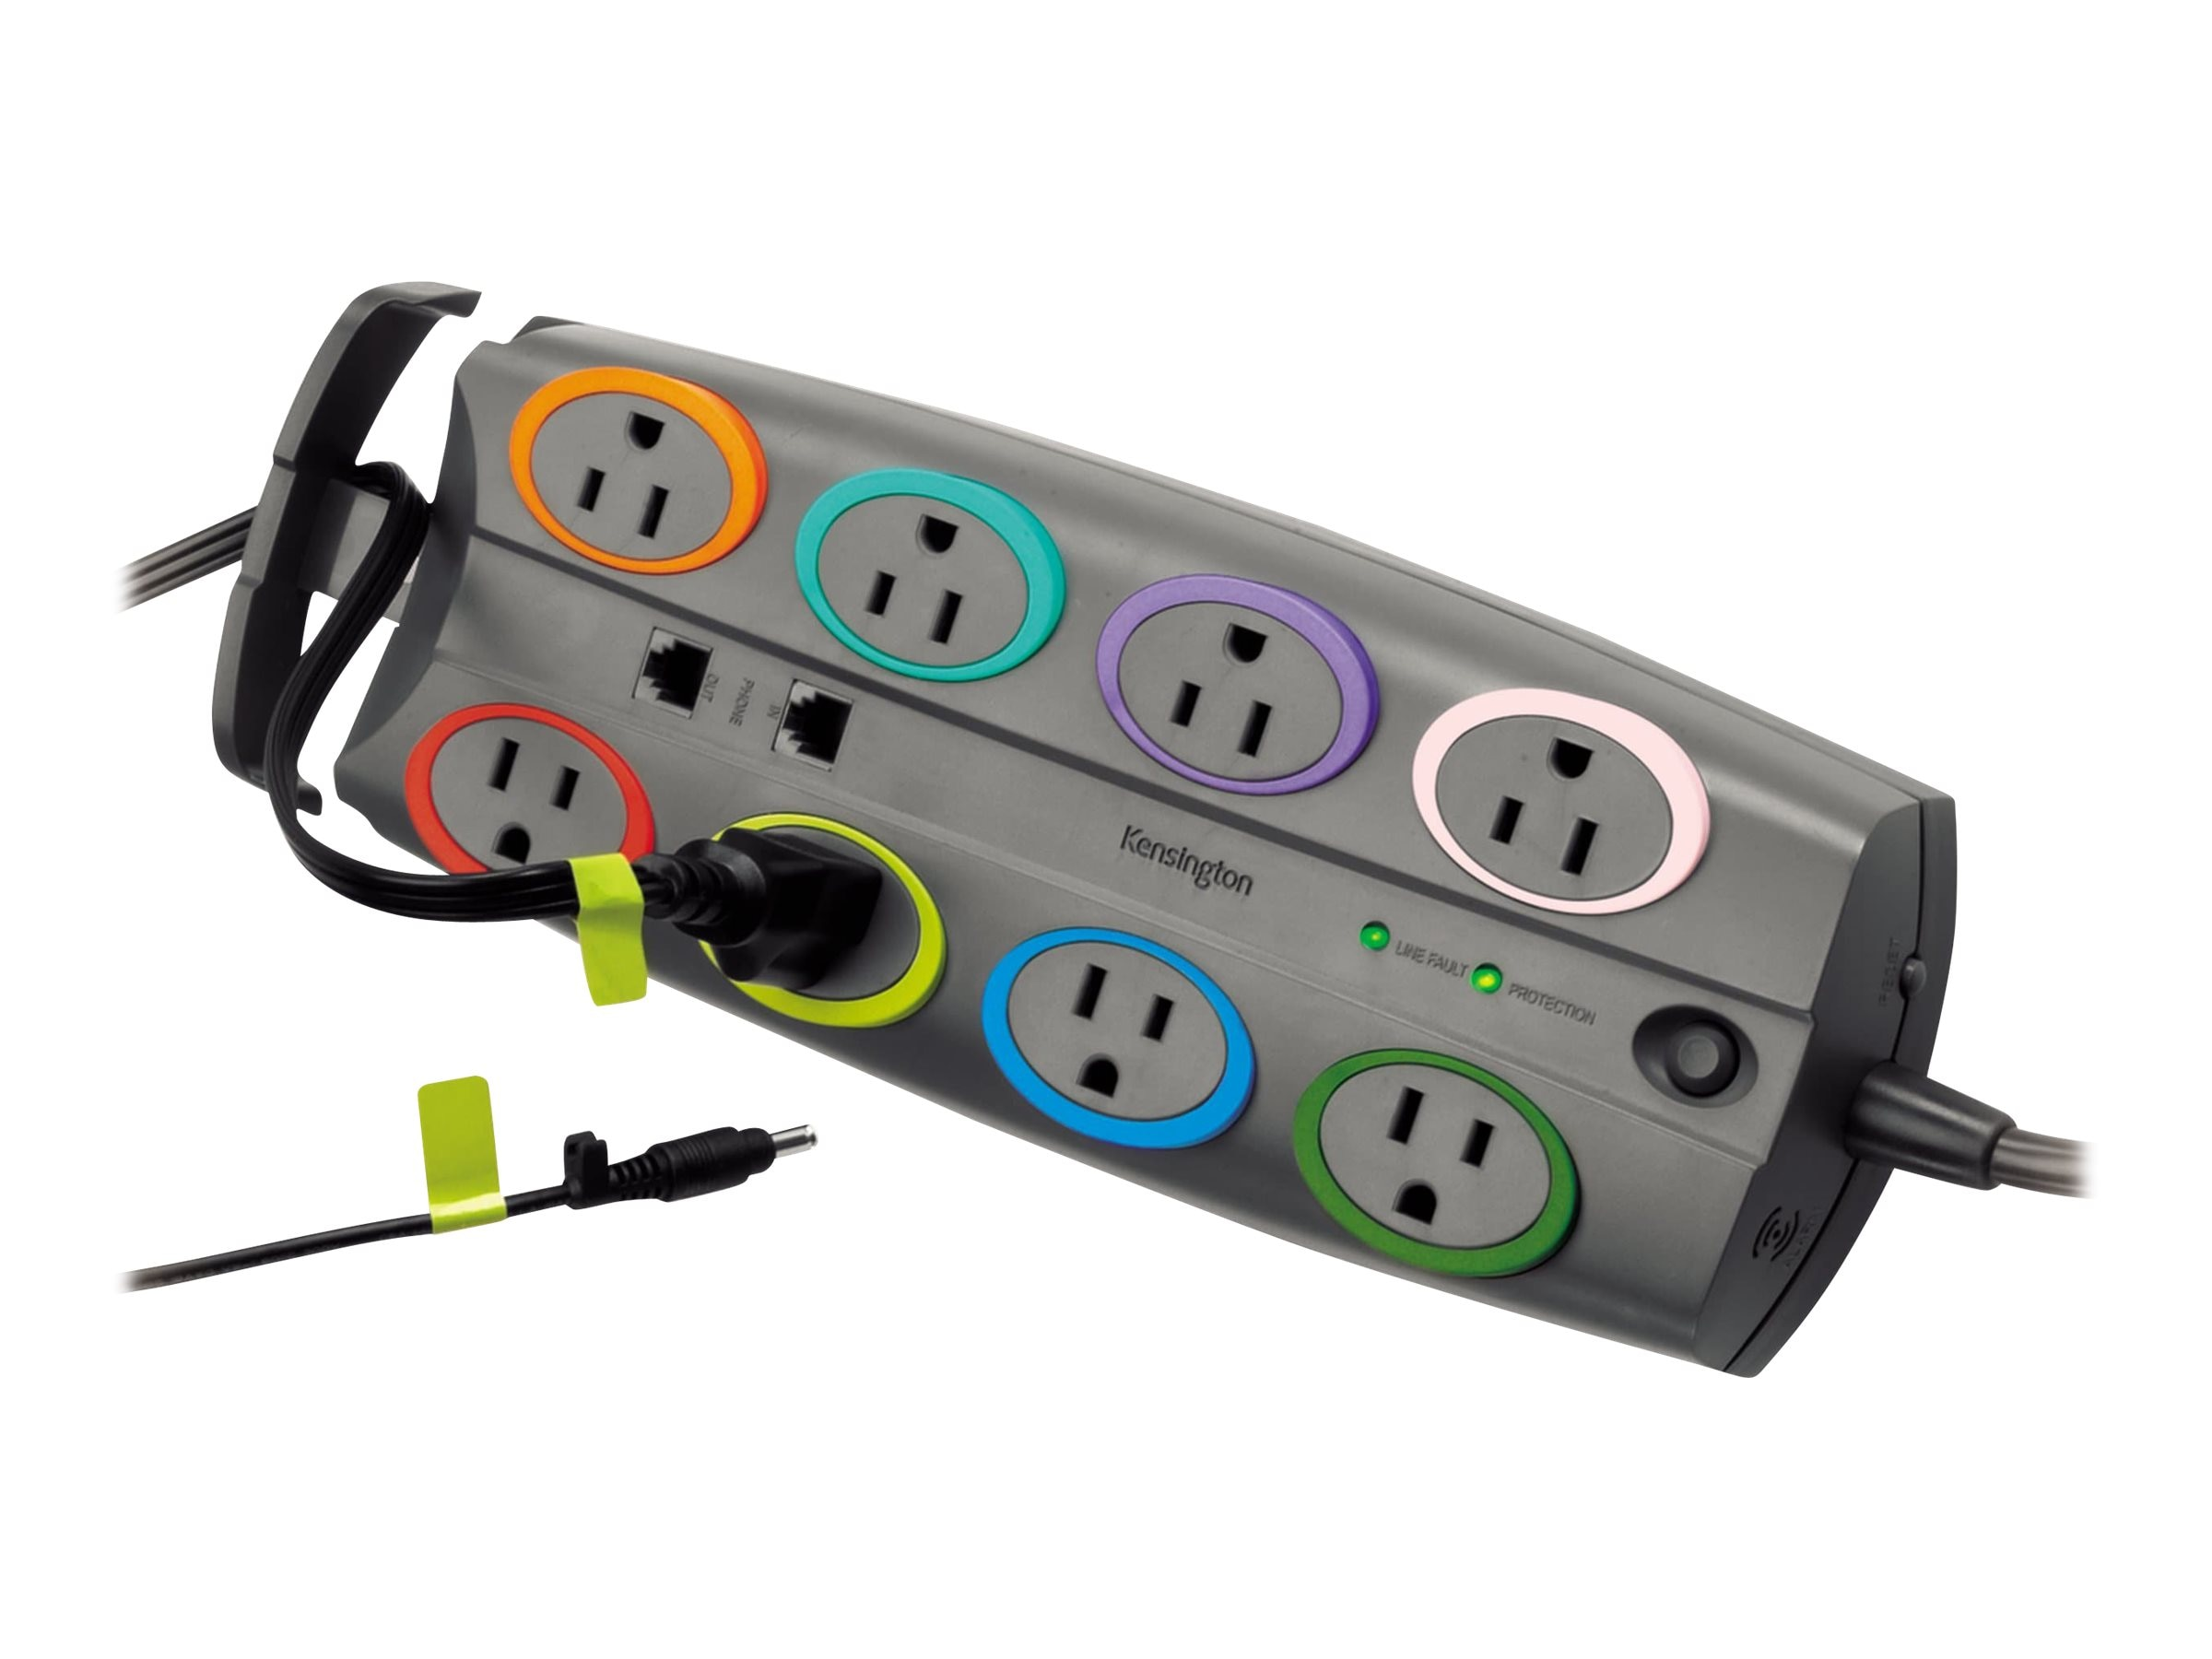 Kensington SmartSockets Standard Surge Protector, 2490 Joules, (8) Outlets, 8ft Cord, Phone Line Protection, K62690NA, 18017450, Surge Suppressors